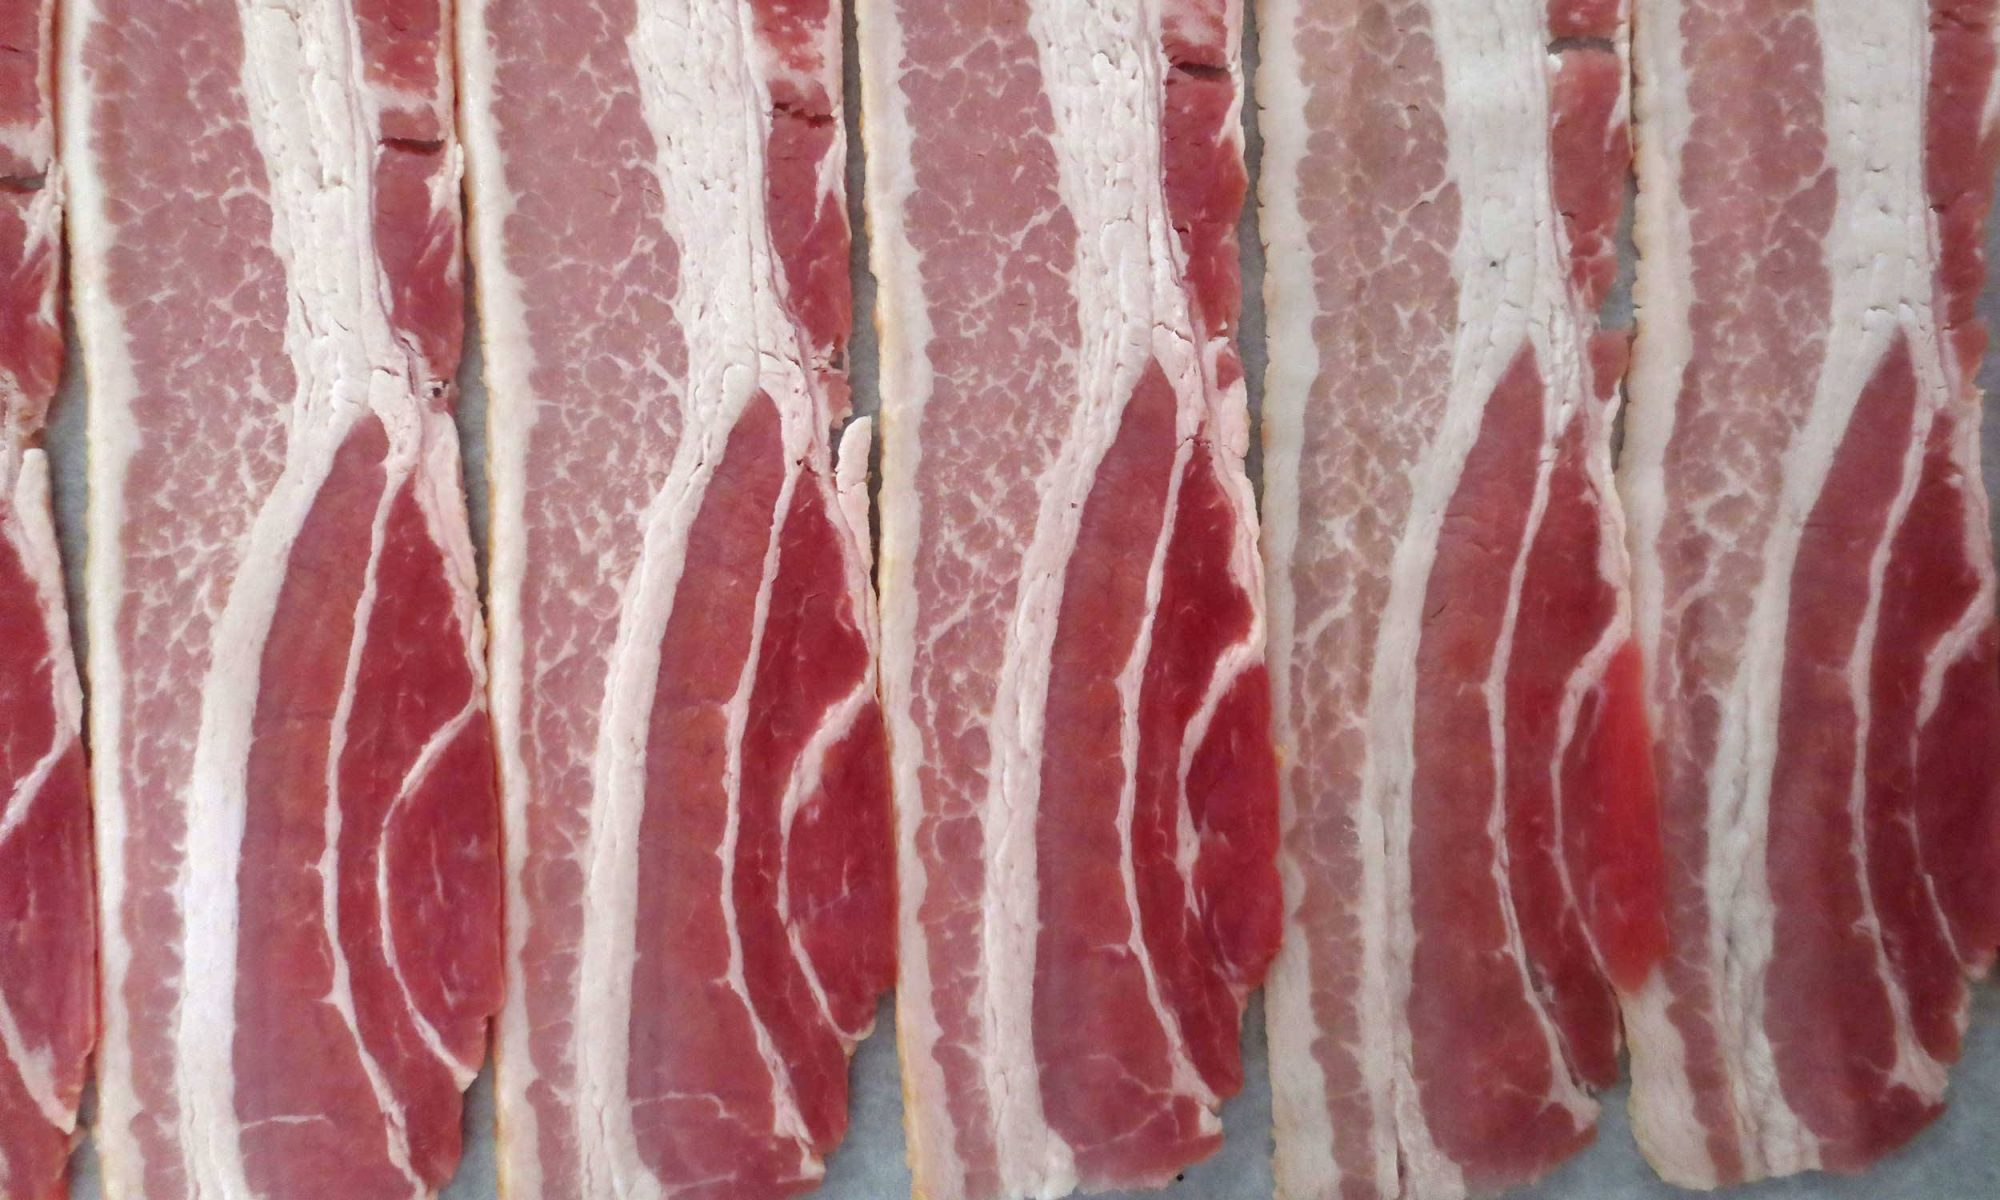 EC: Is Raw Bacon Safe to Eat?